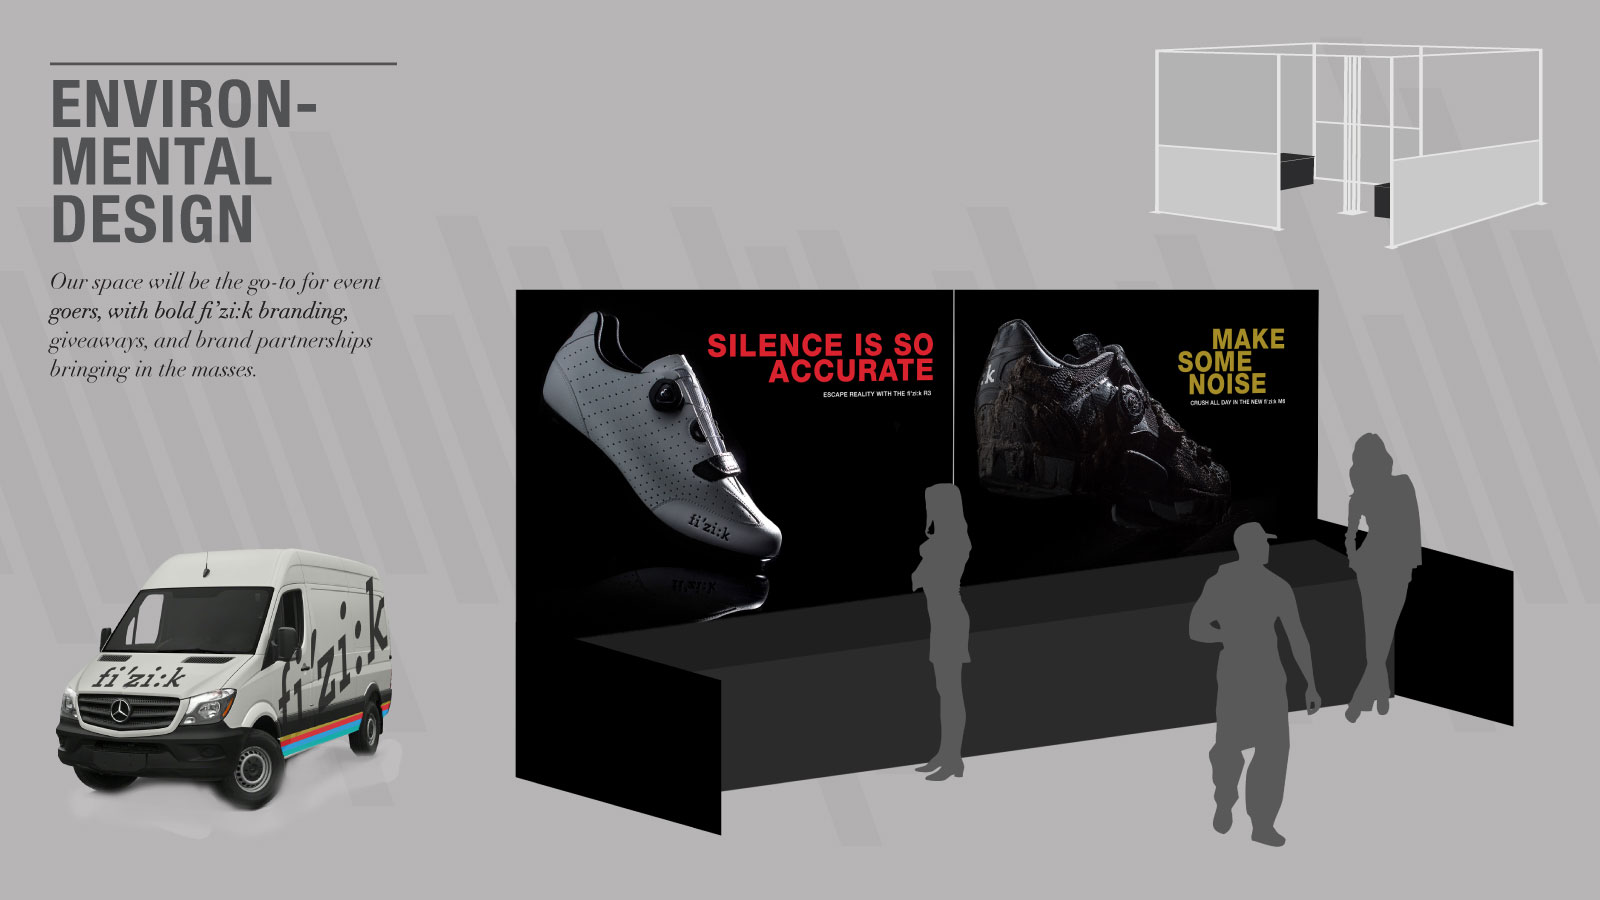 fi'z:k Club Americano Brand Activation | Environmental Design and Event Activation